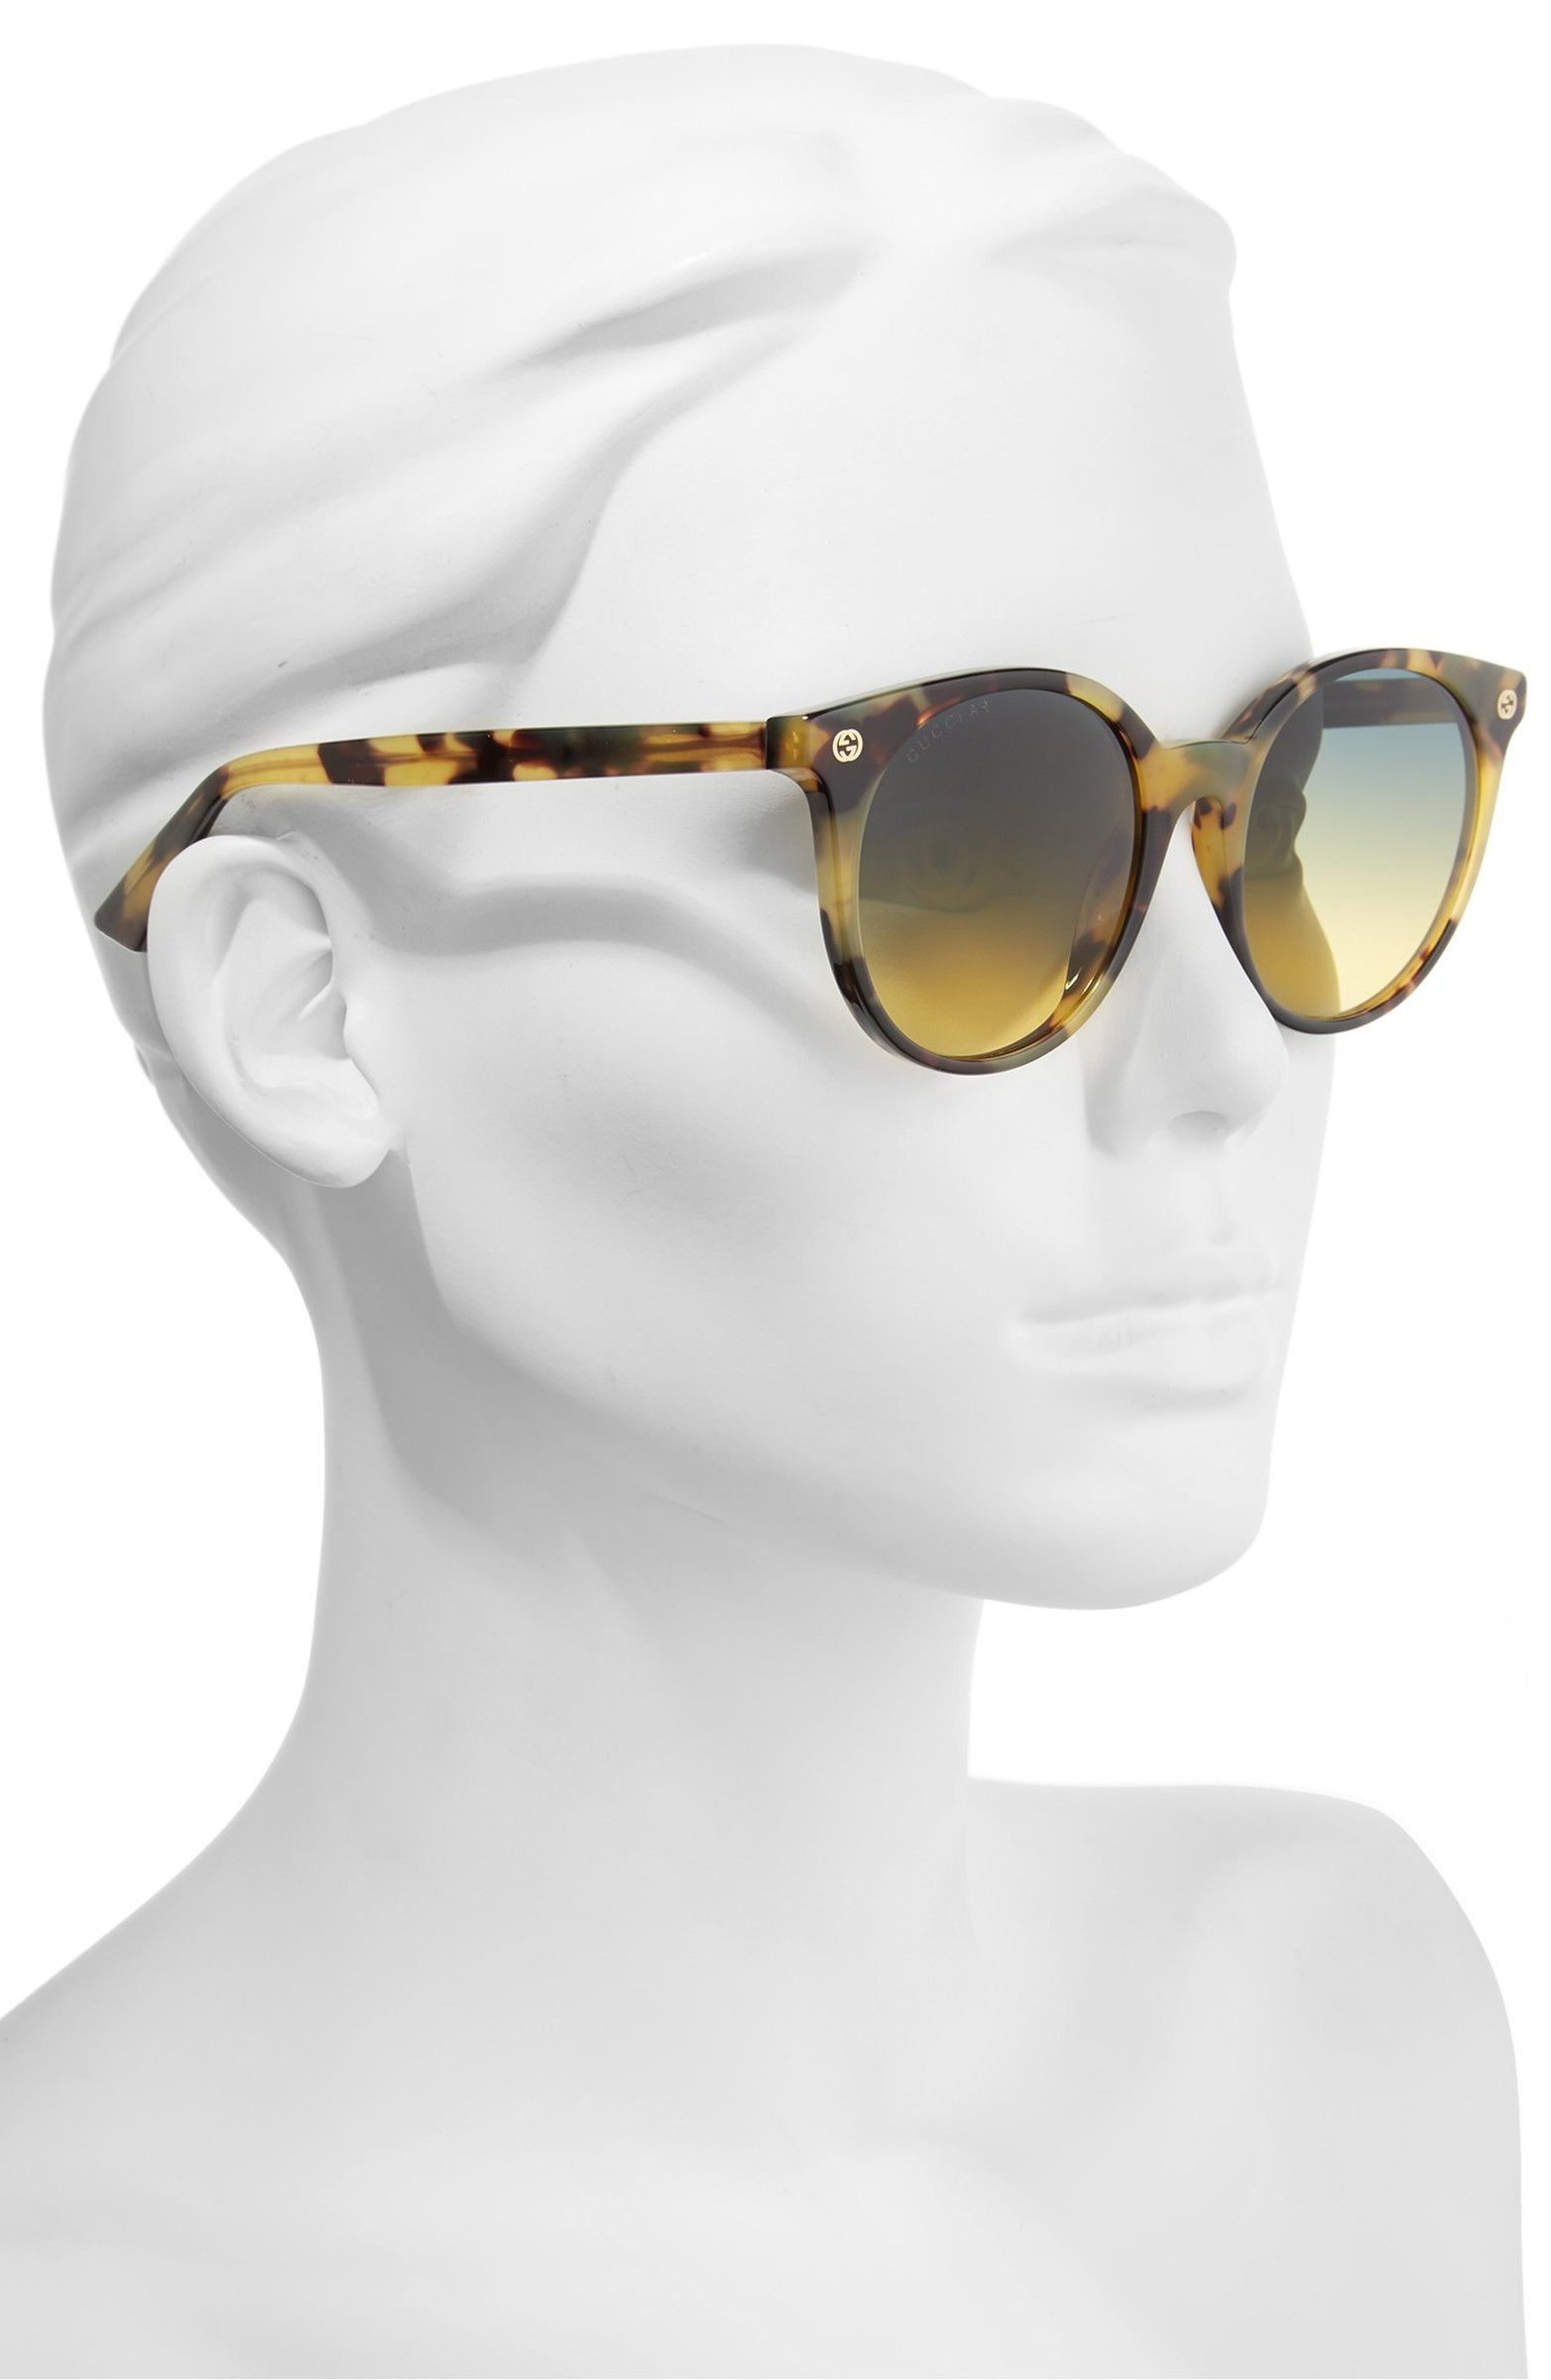 b179a2543d Main Image - Gucci 52mm Round Sunglasses